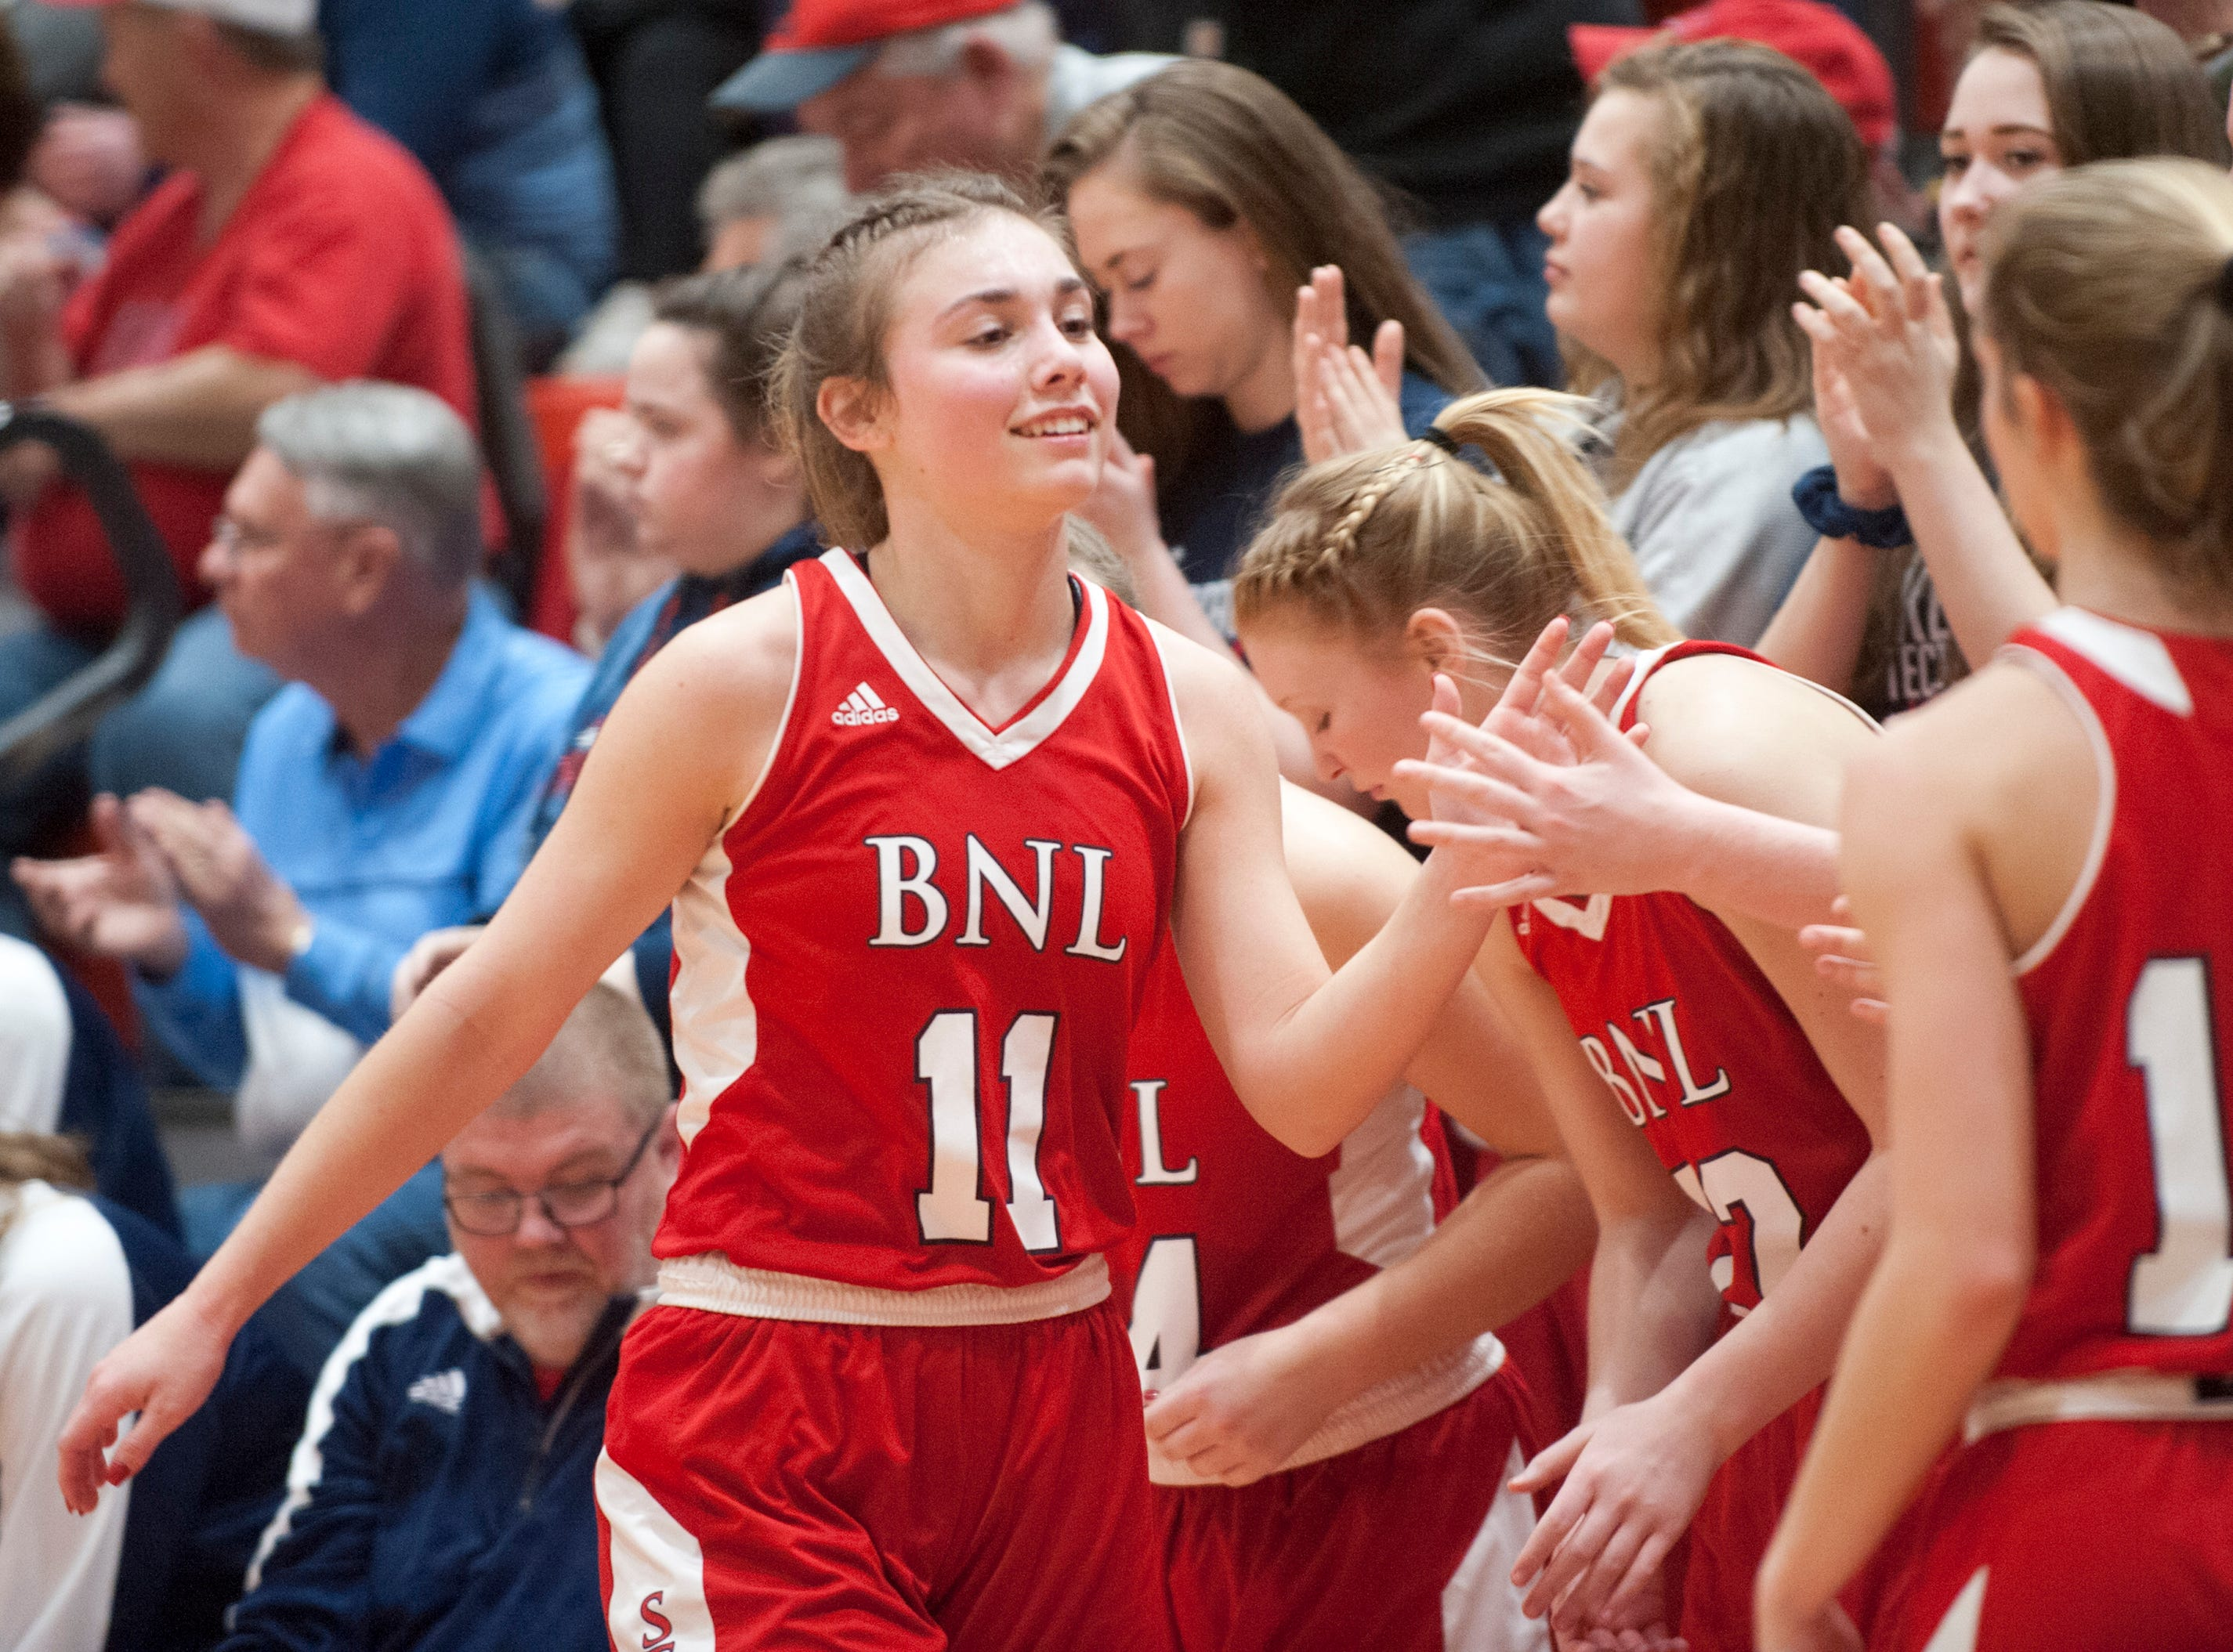 Bedford North Lawrence forward Chloe Mcknight is congratulated by her teammates as she comes out of the game.04 February 2019